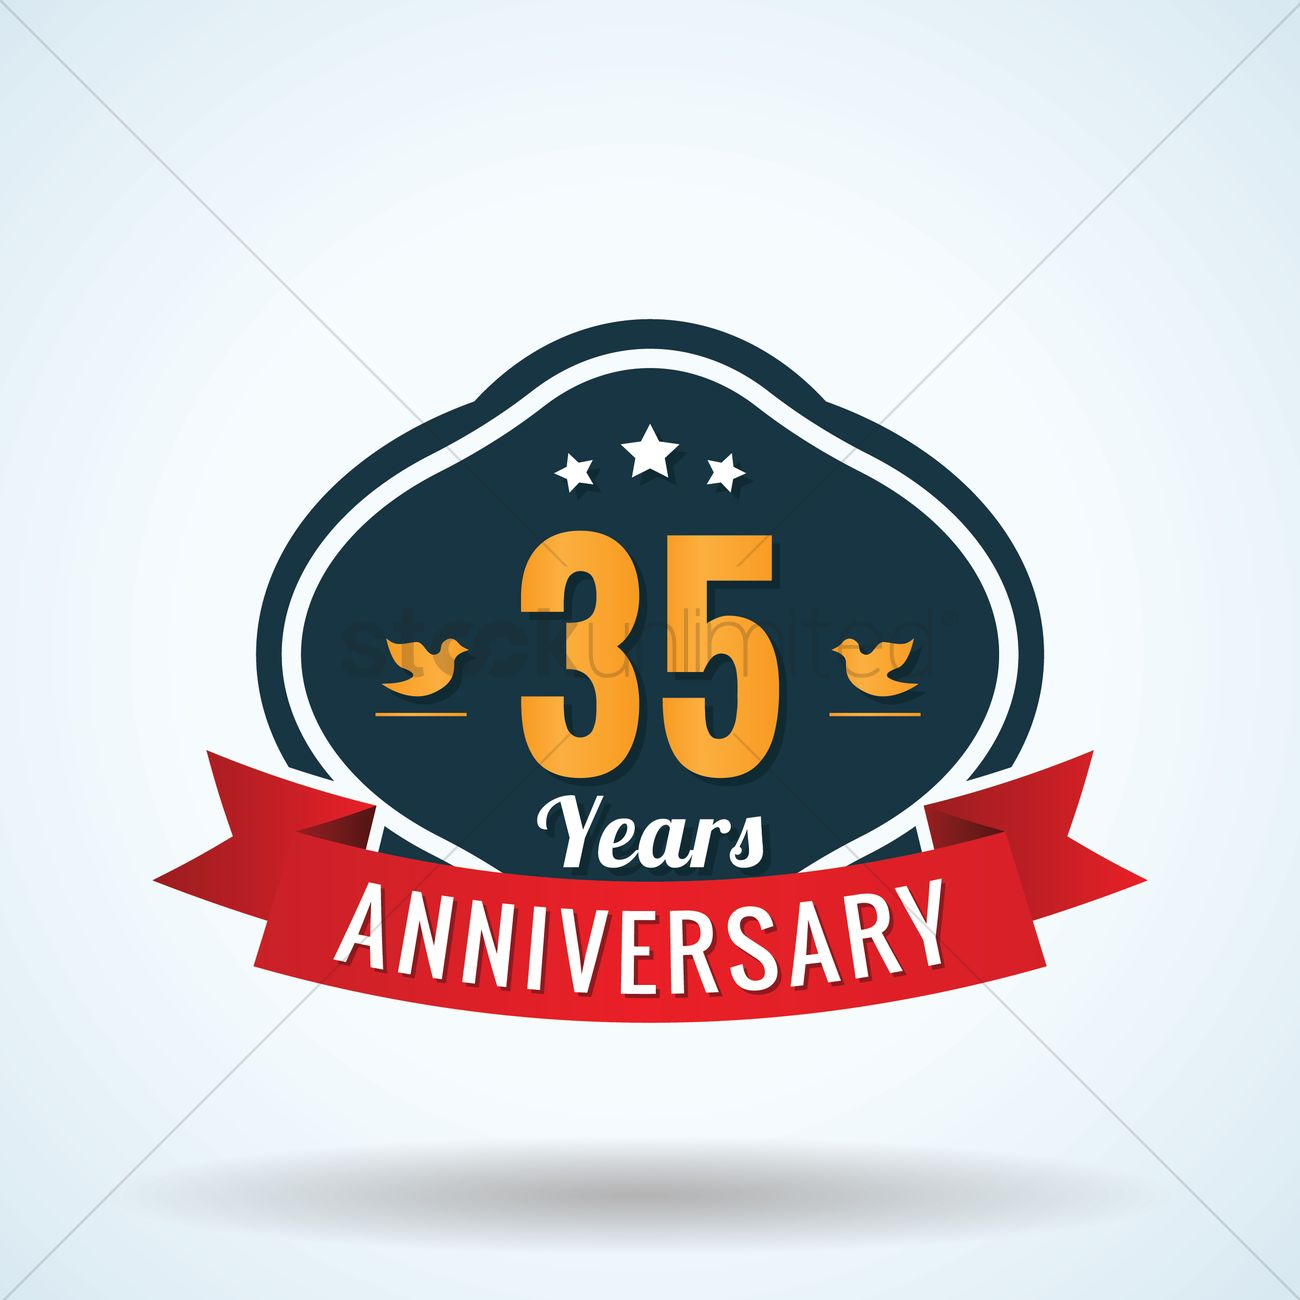 Thirty Five Years Anniversary Label Vector Image 1825362